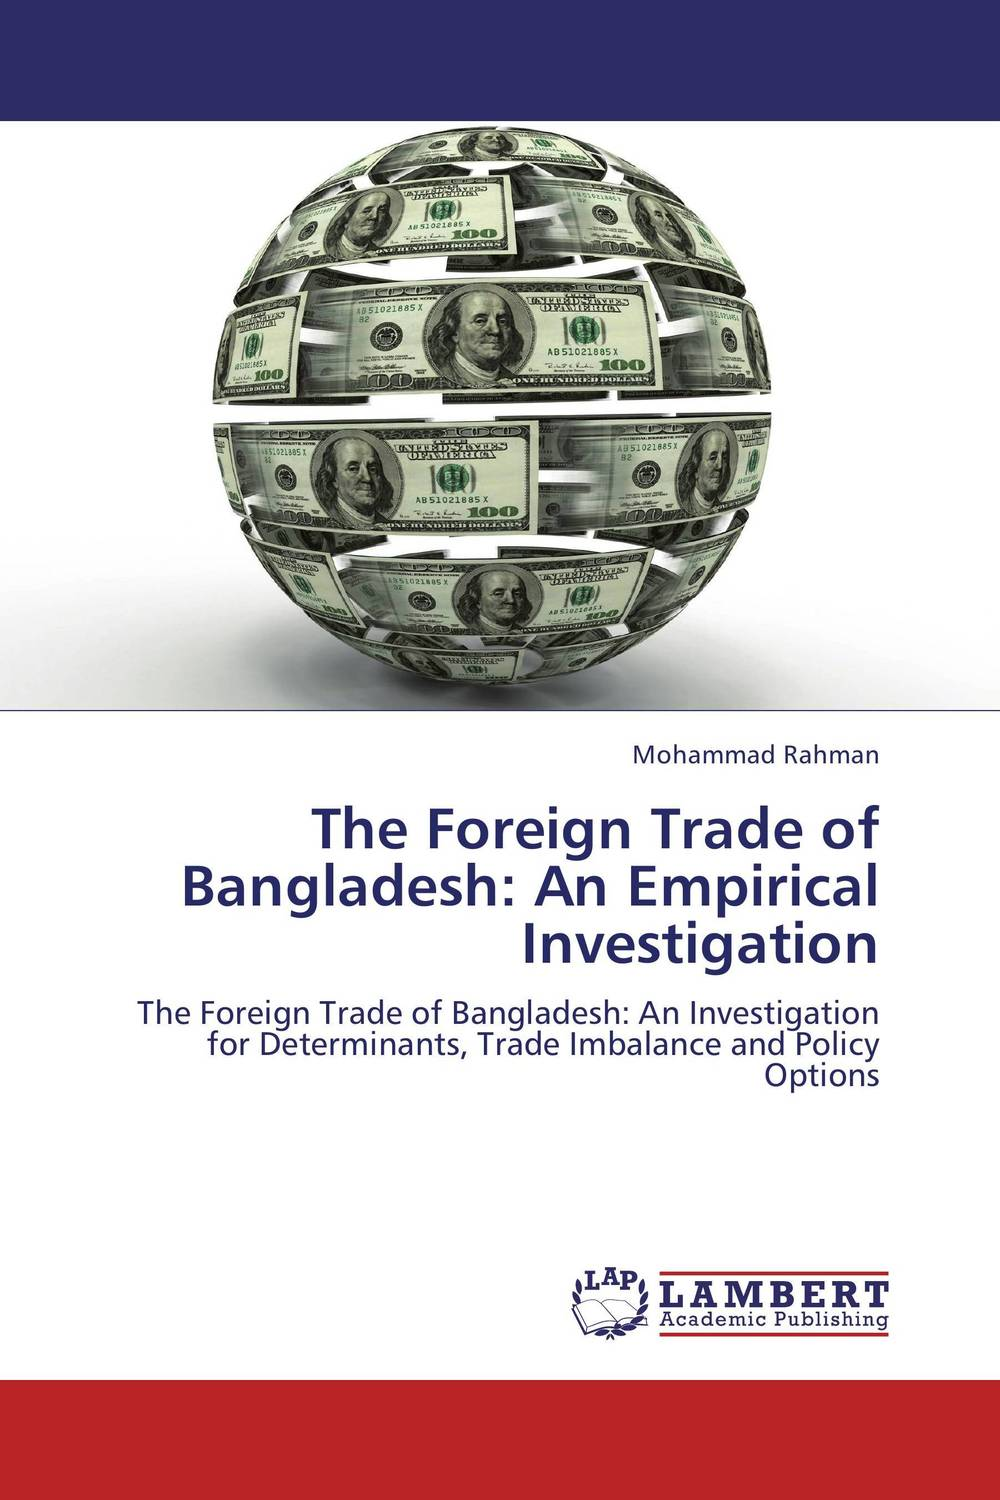 The Foreign Trade of Bangladesh: An Empirical Investigation arcade ndoricimpa inflation output growth and their uncertainties in south africa empirical evidence from an asymmetric multivariate garch m model